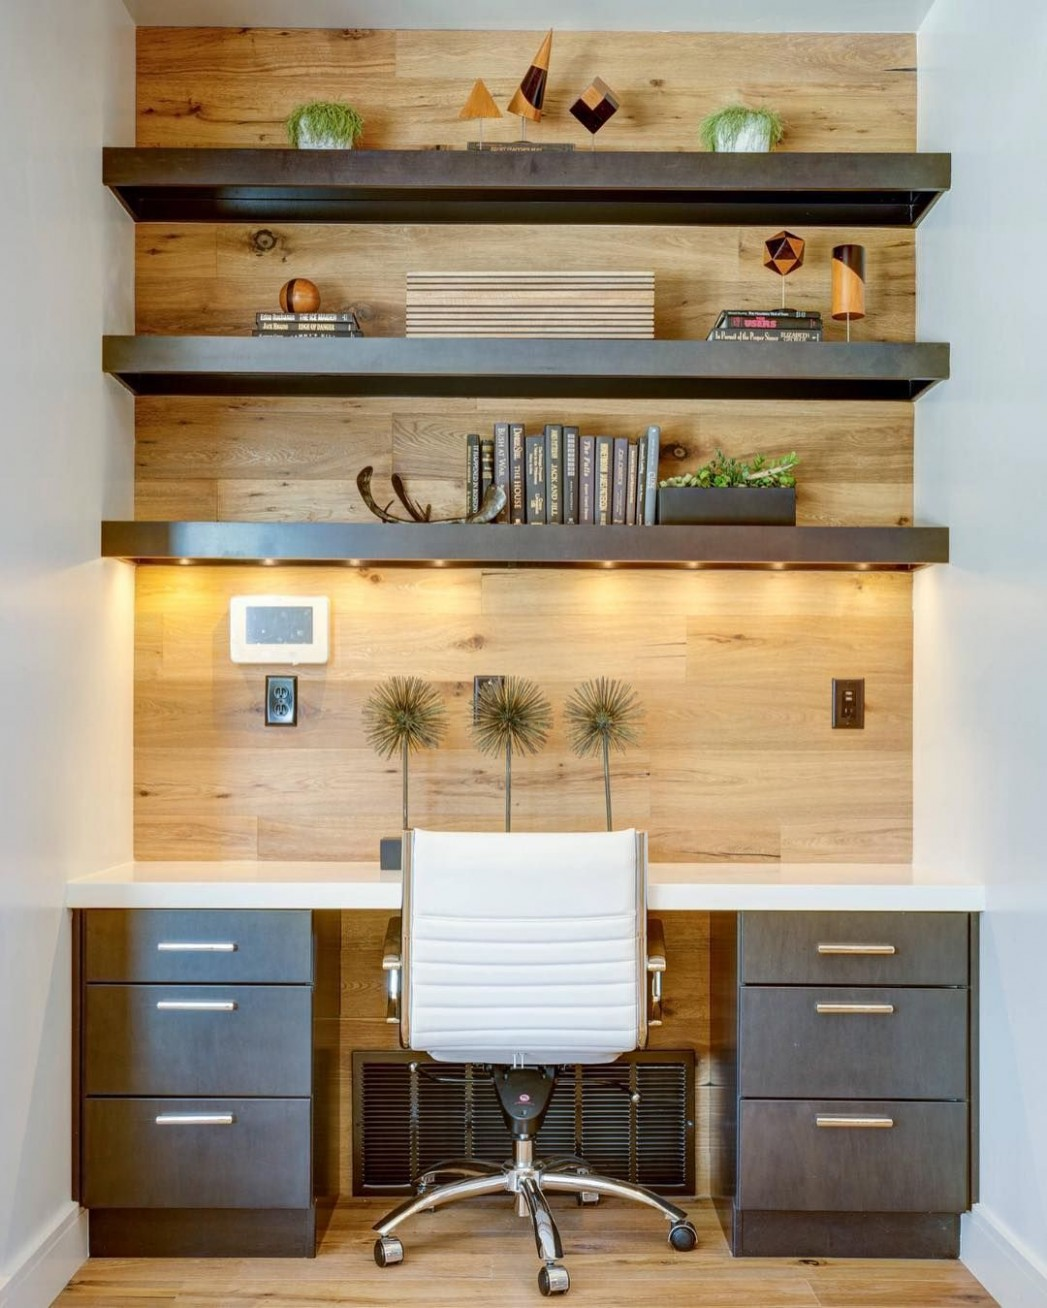 Small space desk ideas  Small home offices, Small home office  - Home Office Design Ideas Uk